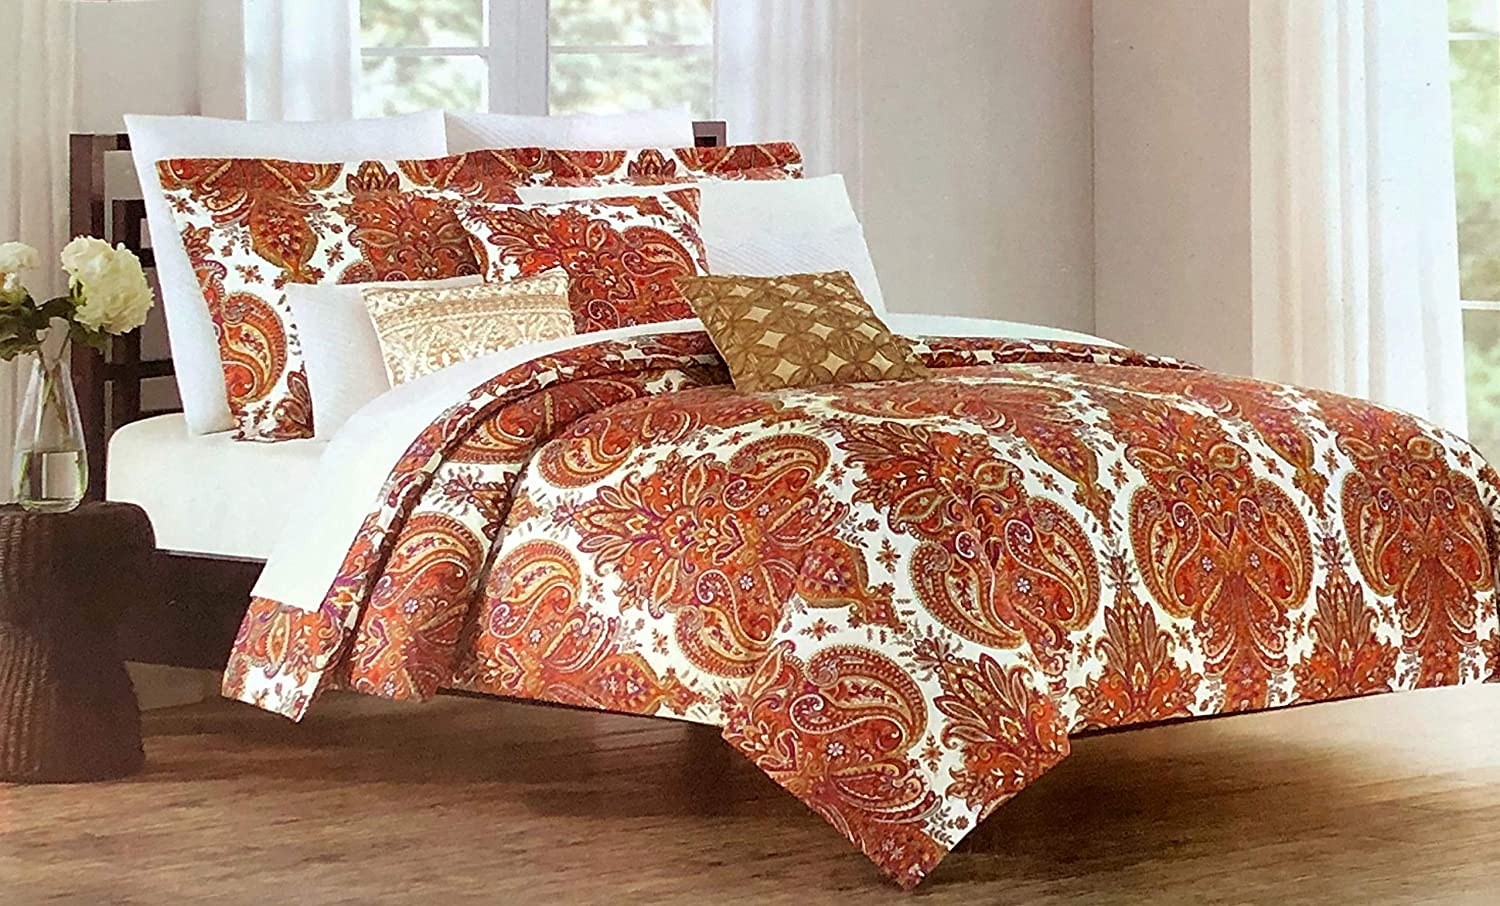 Cynthia Rowley 3pc Duvet Set Paisley Medallions in Shades of Orange Rust Yellow Purple on Cream Luxury Comforter Quilt Cover Set with Pillowcases/Shams - Paisley Garden, Spice (King)